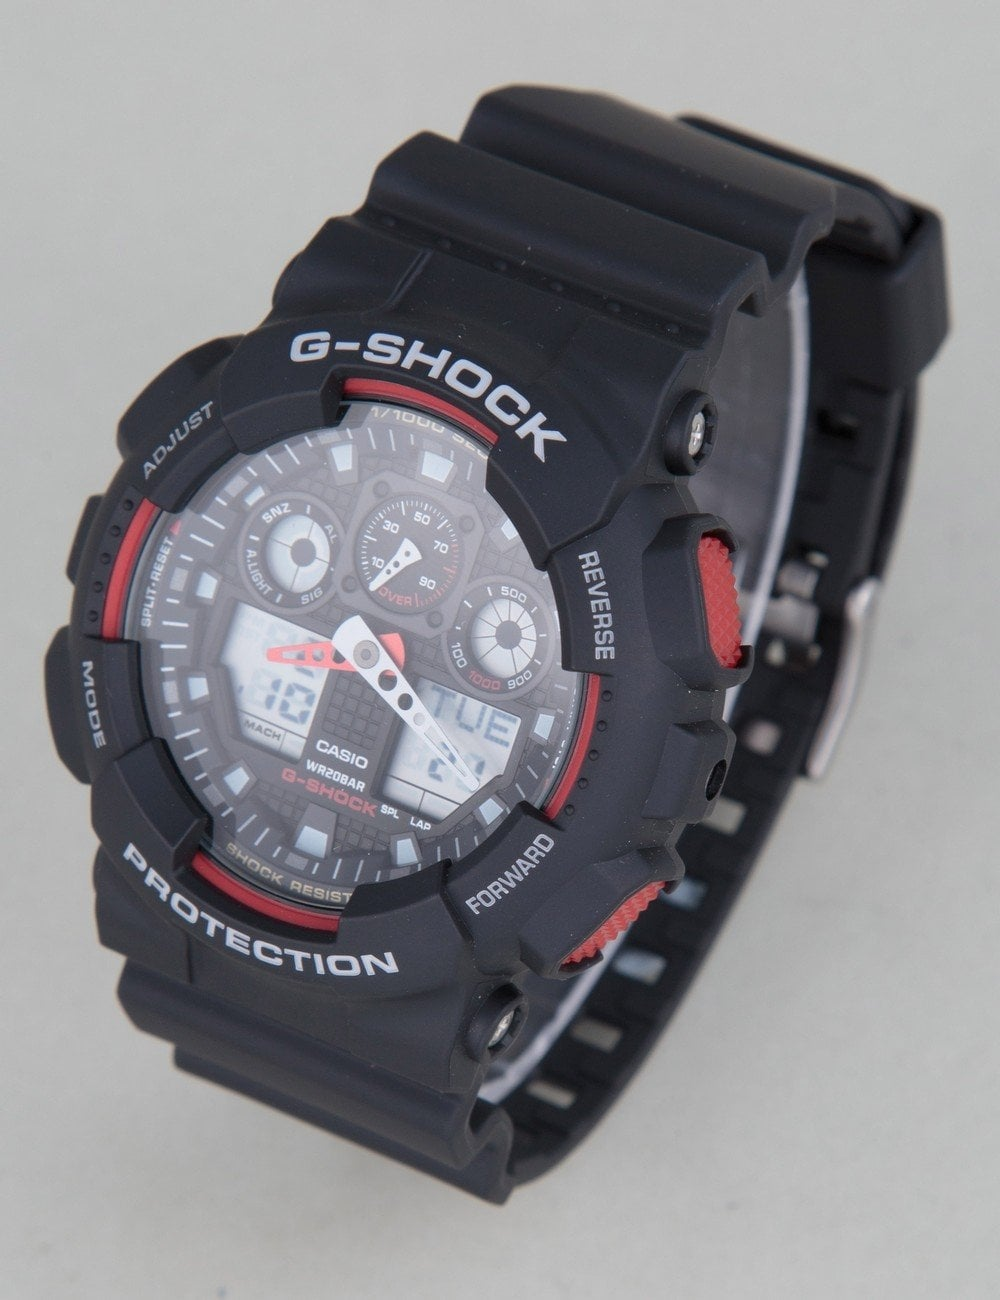 4551ab618df44 G-Shock GA-100-1A4ER Watch - Black Red - Accessories from Fat Buddha Store  UK